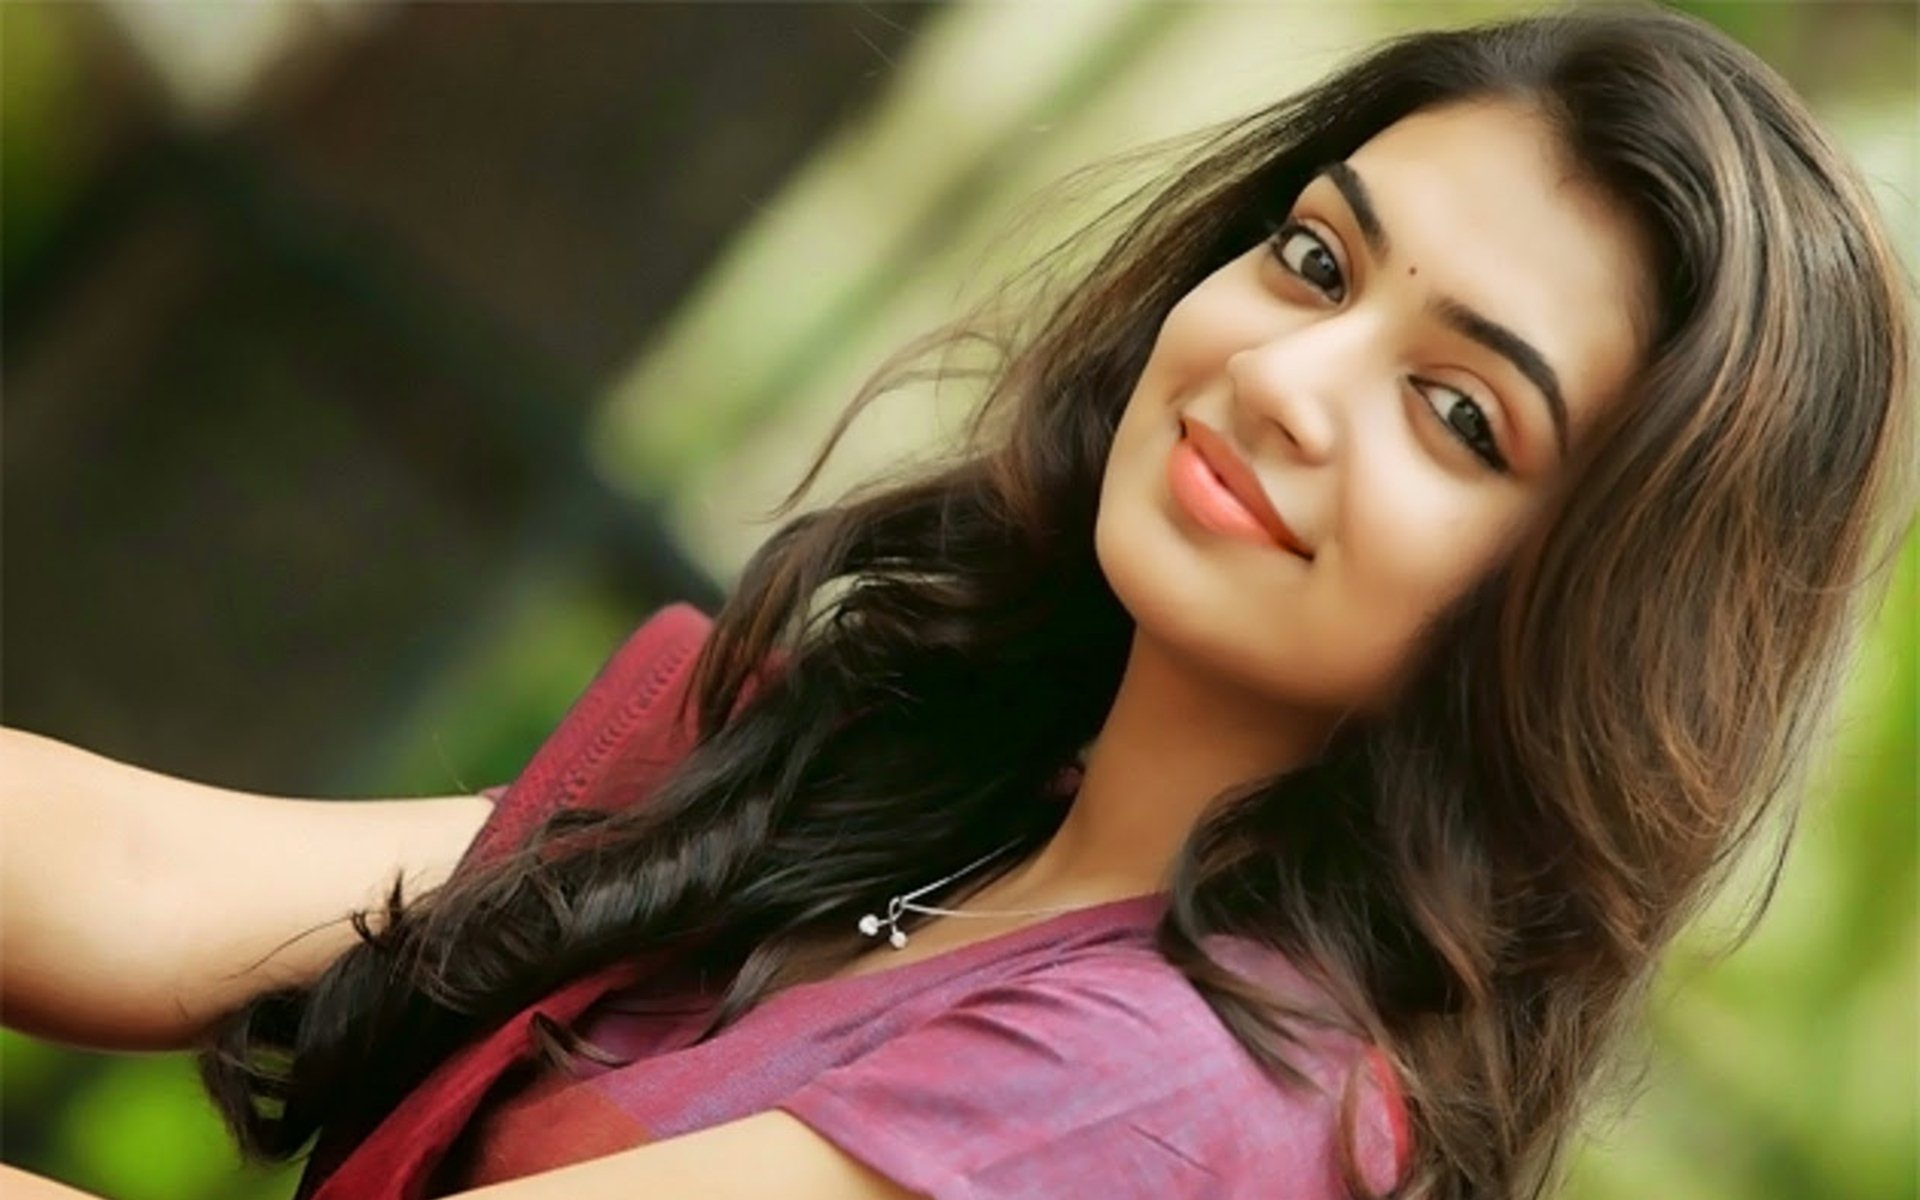 Wallpaper Images With Tamil Quotes Beautiful Indian Girl Looking Very Innocent Desi Kahaniyaan